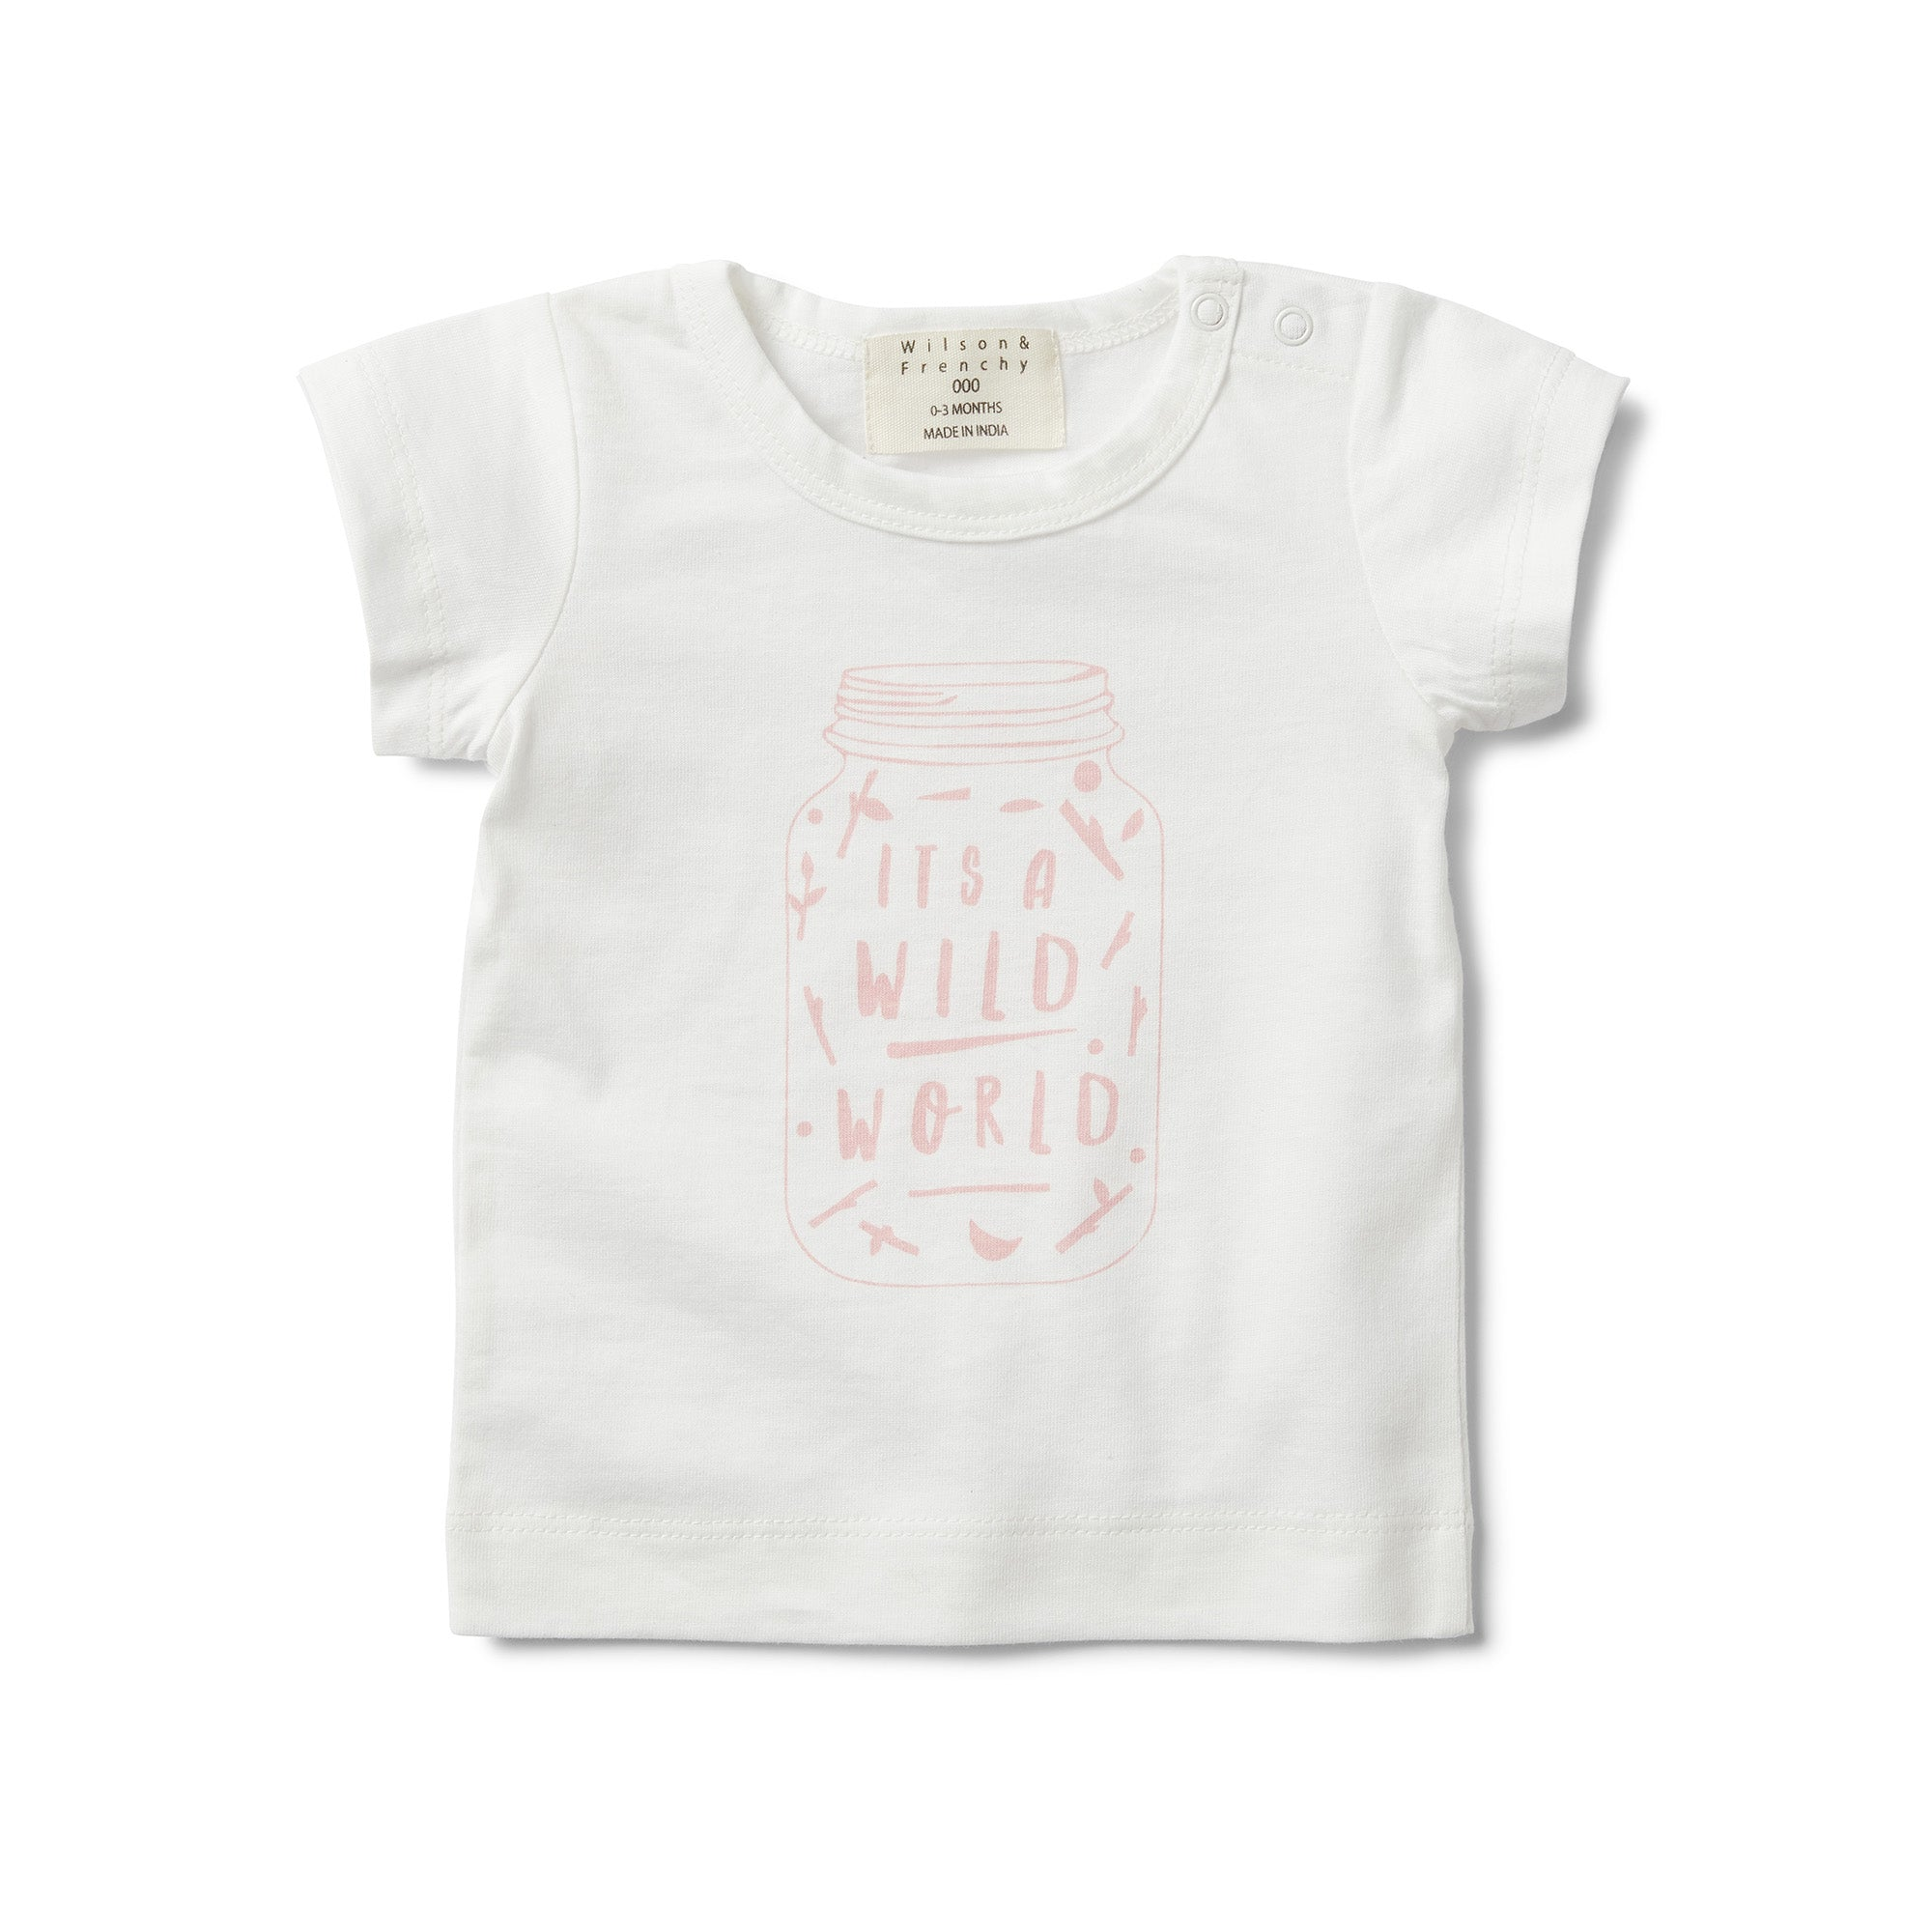 Short Sleeve T-shirt - It's A Wild World